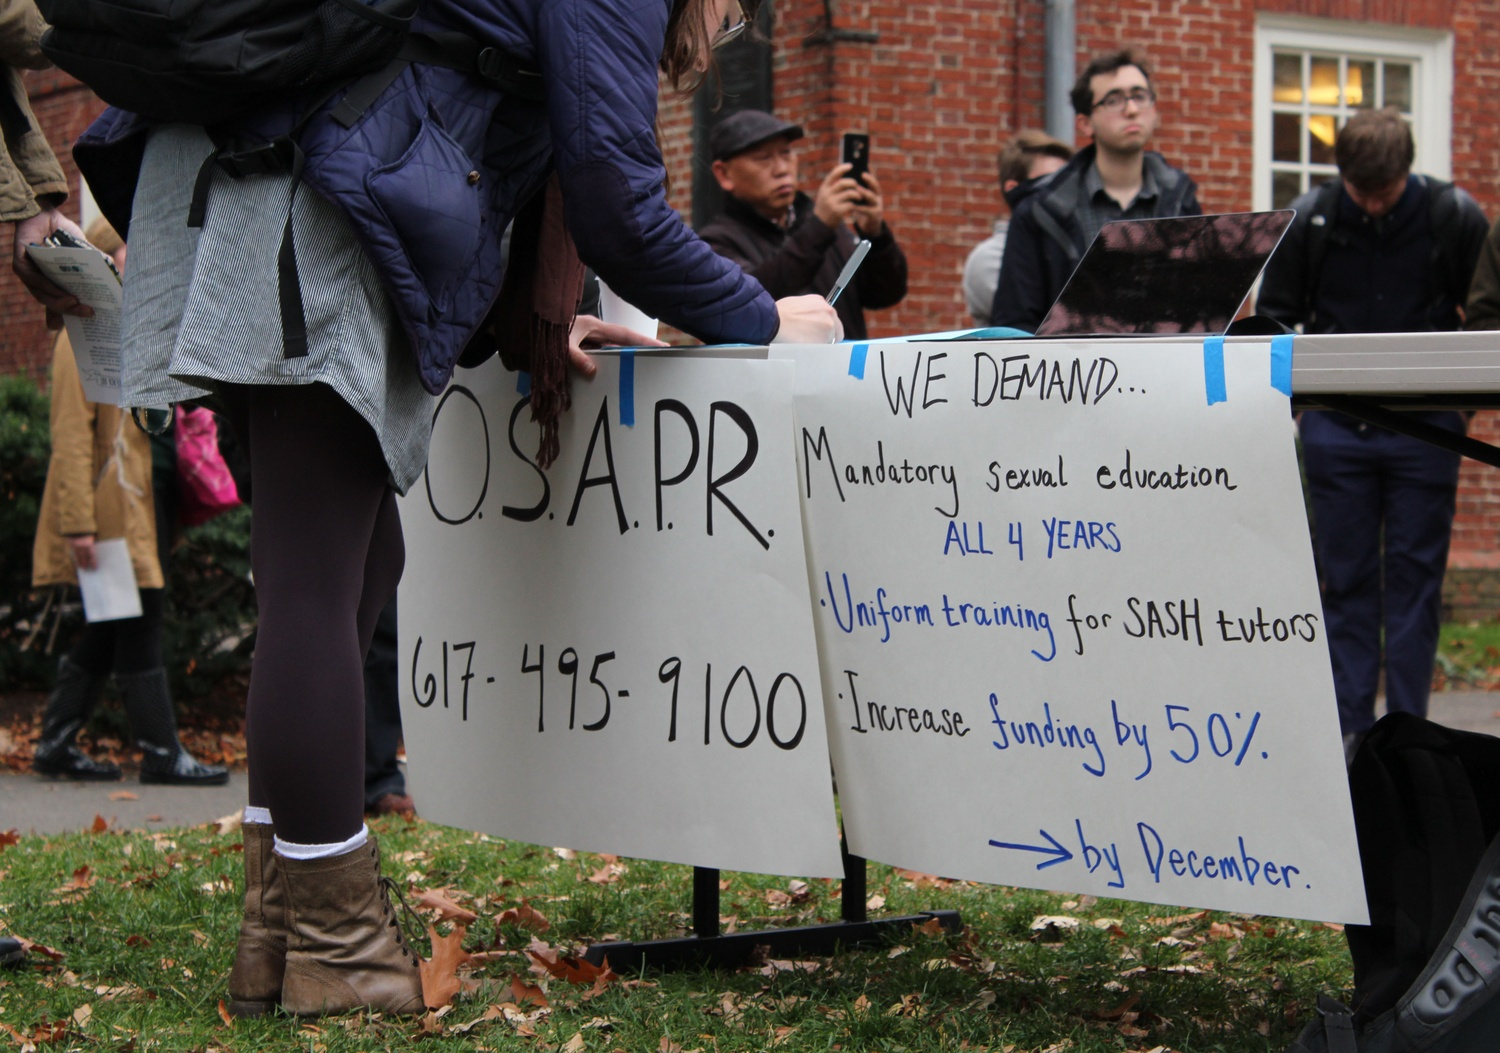 At a 2015 rally, students signed a petition in support of demands to overhaul Harvard's sexual assault prevention programs.